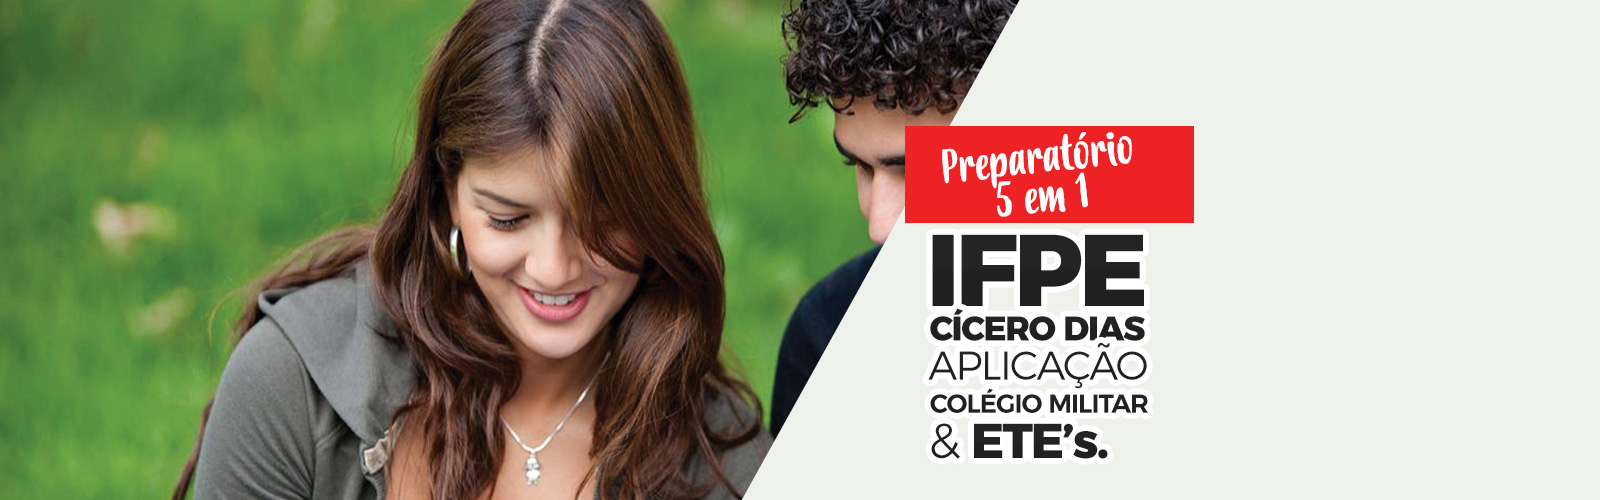 ifpe-site